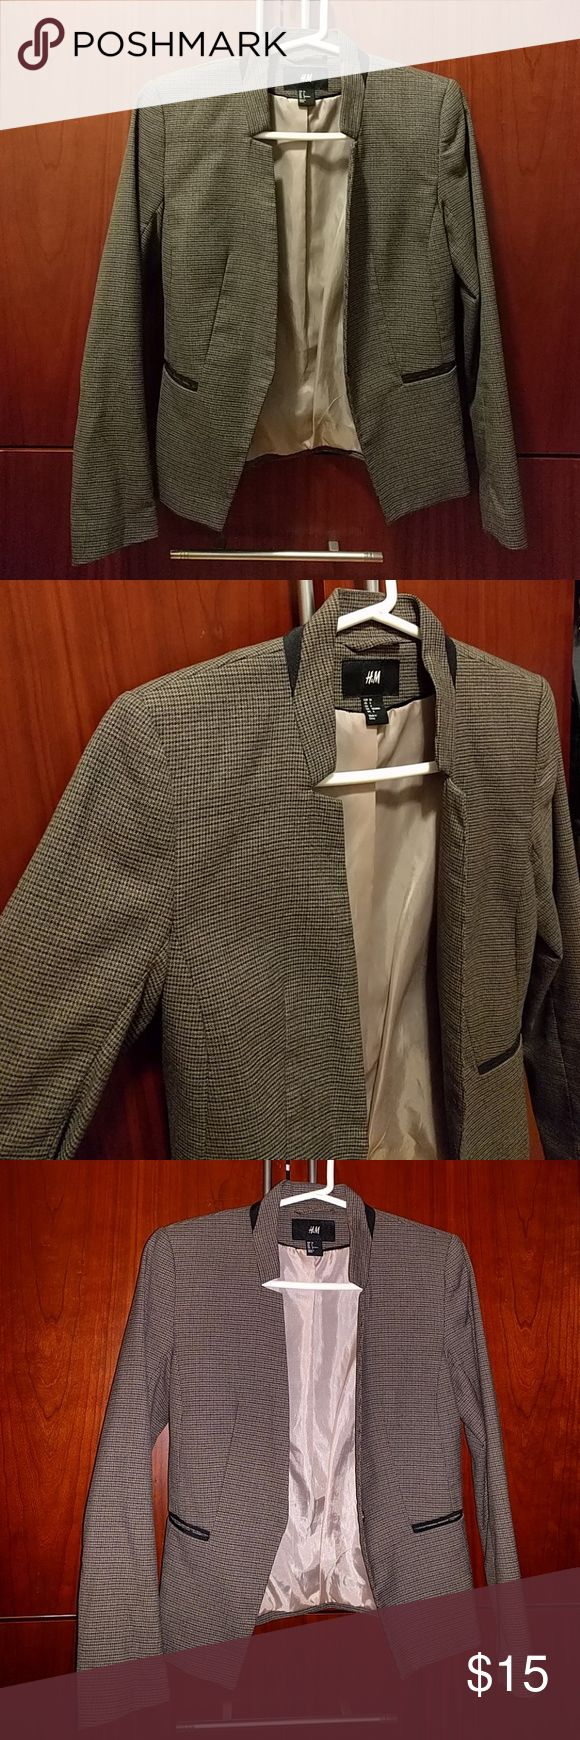 H&M brown plaid jacket blazer It's like a light brown jacket with a plaid light design. Cute cut out at neck area H&M Jackets & Coats Blazers